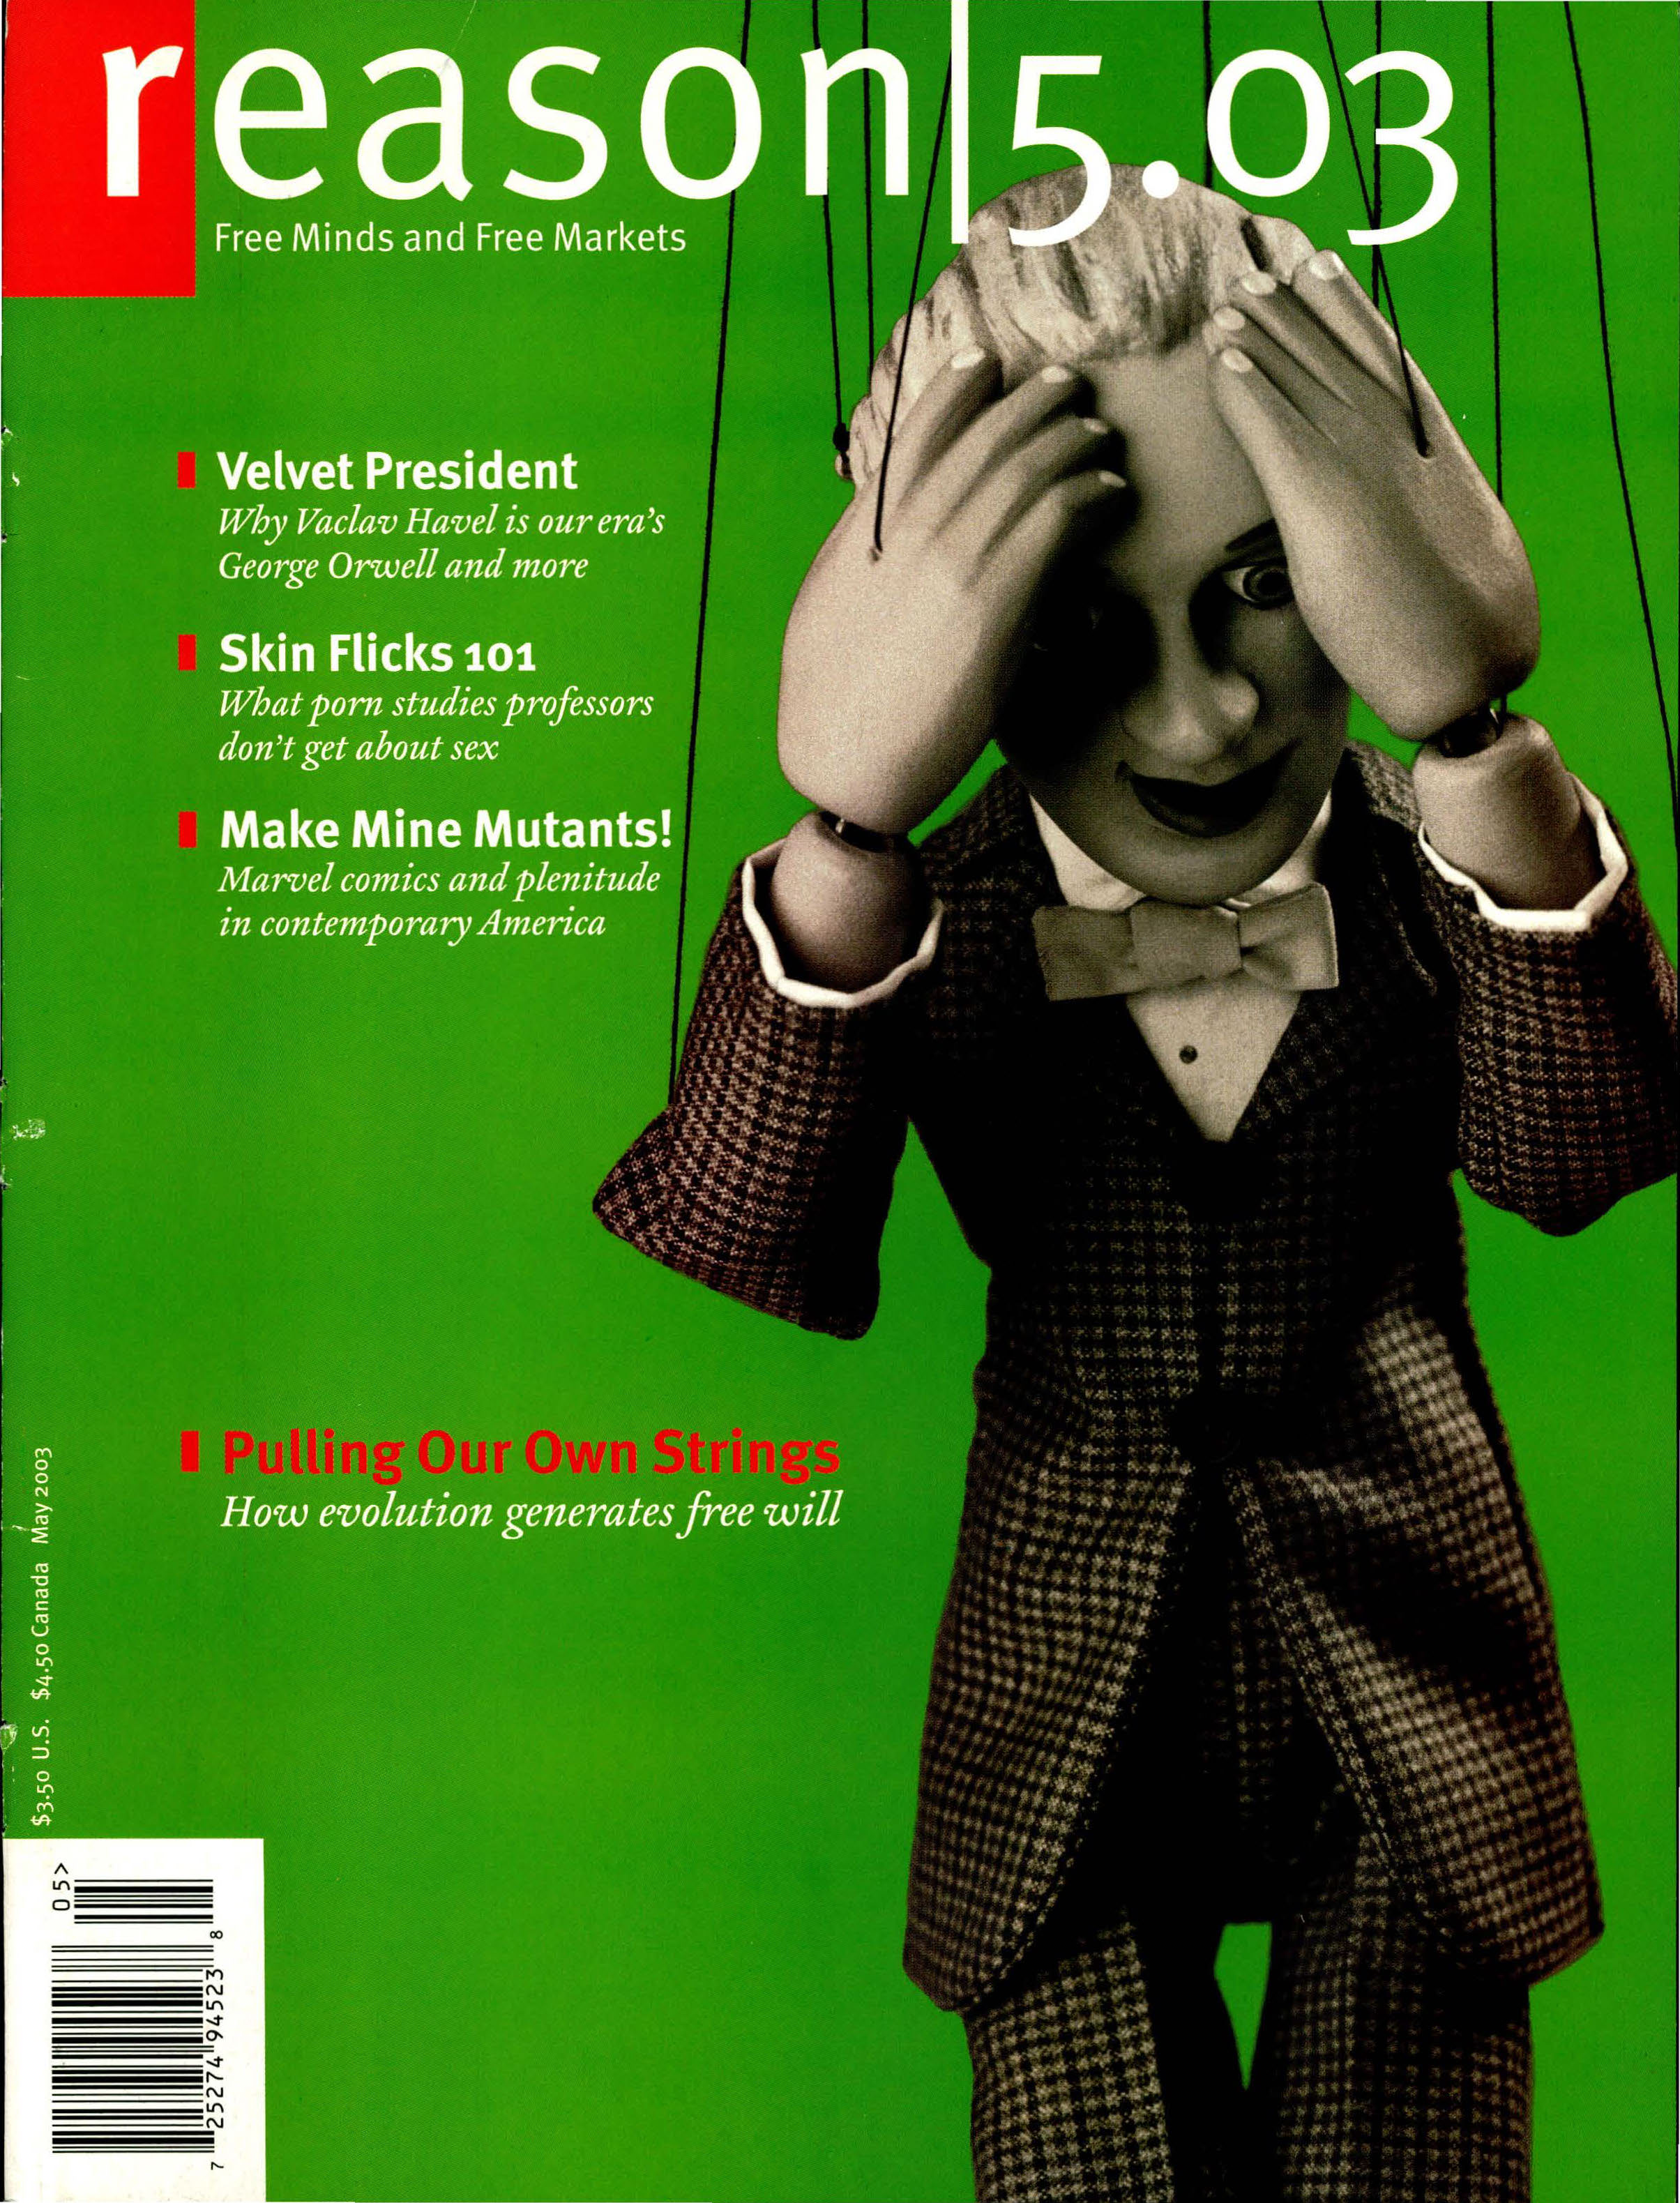 Reason Magazine, May 2003 cover image